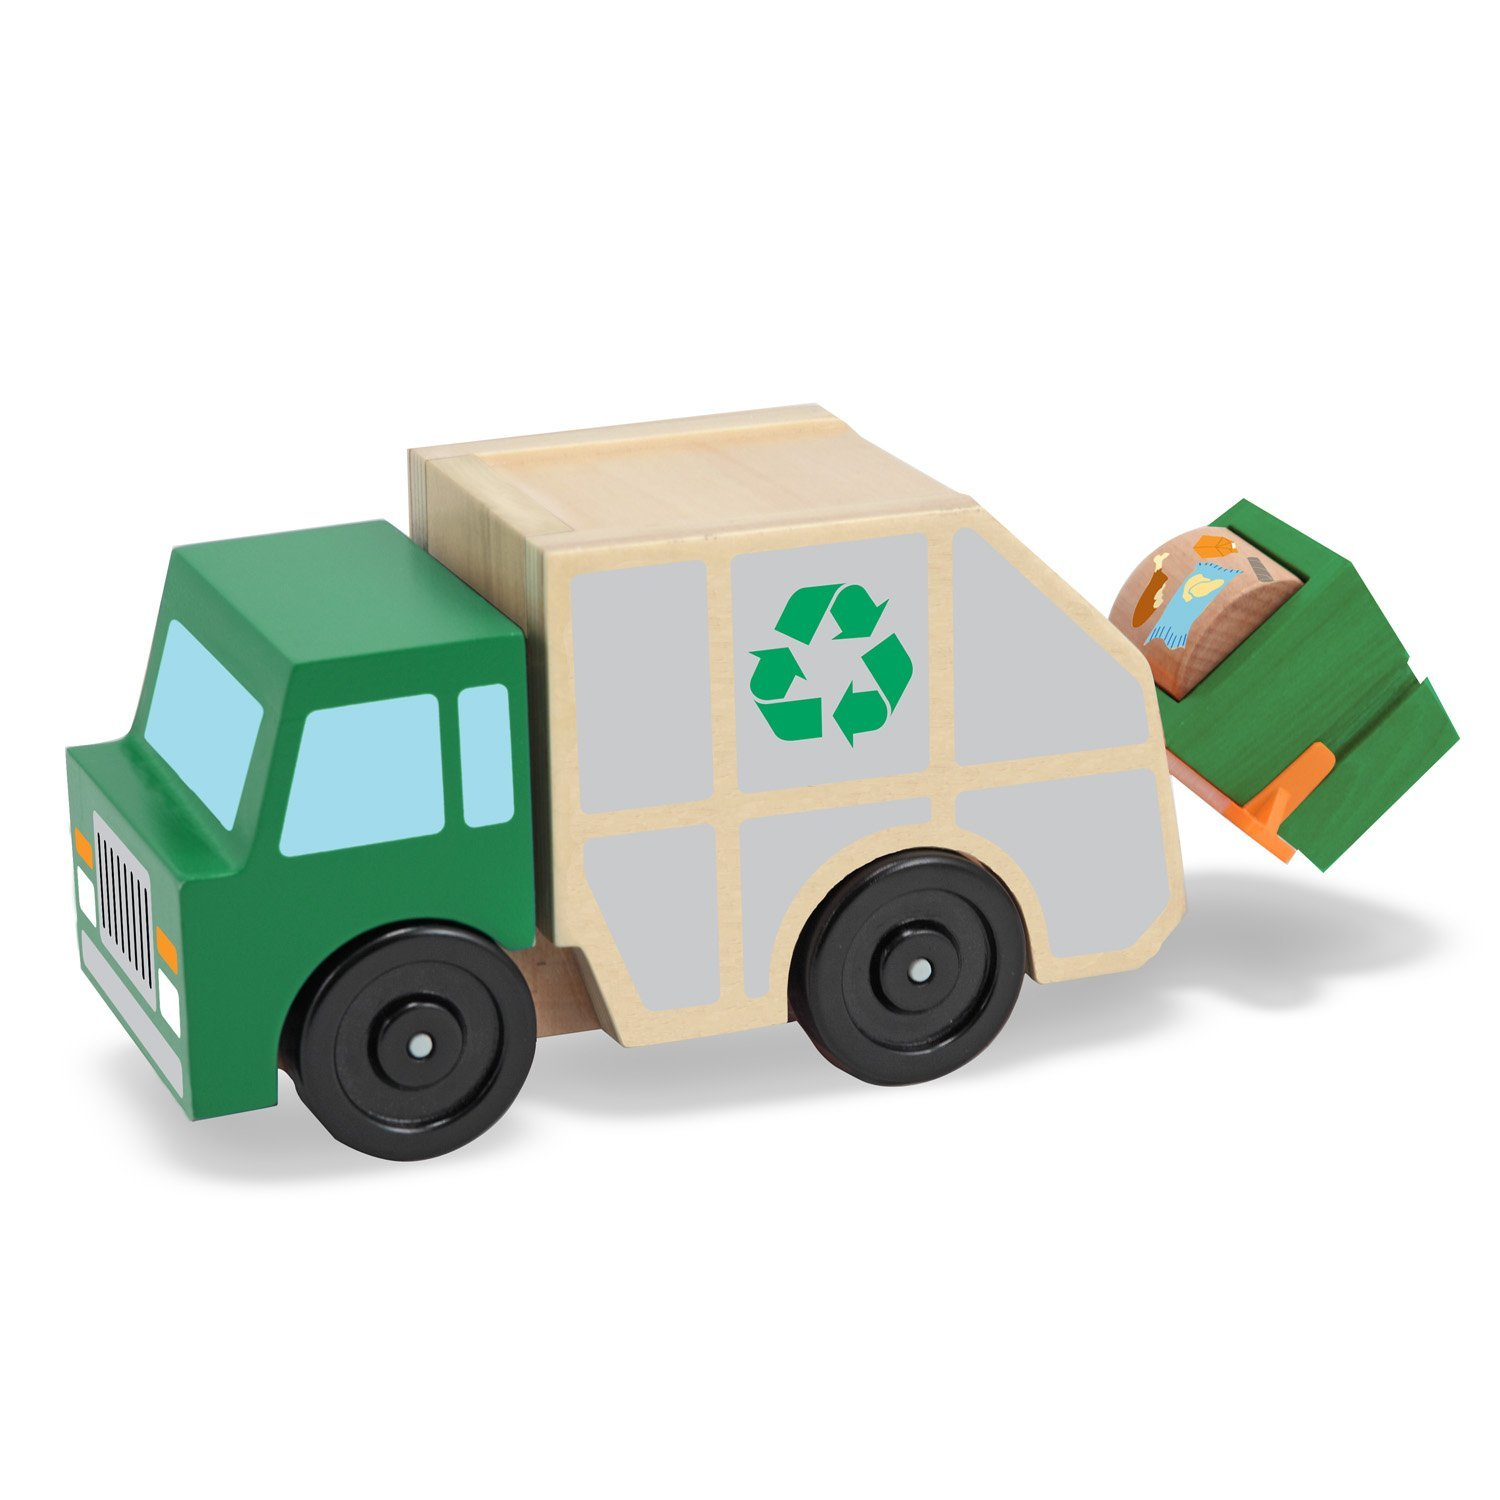 Garbage truck toy photo